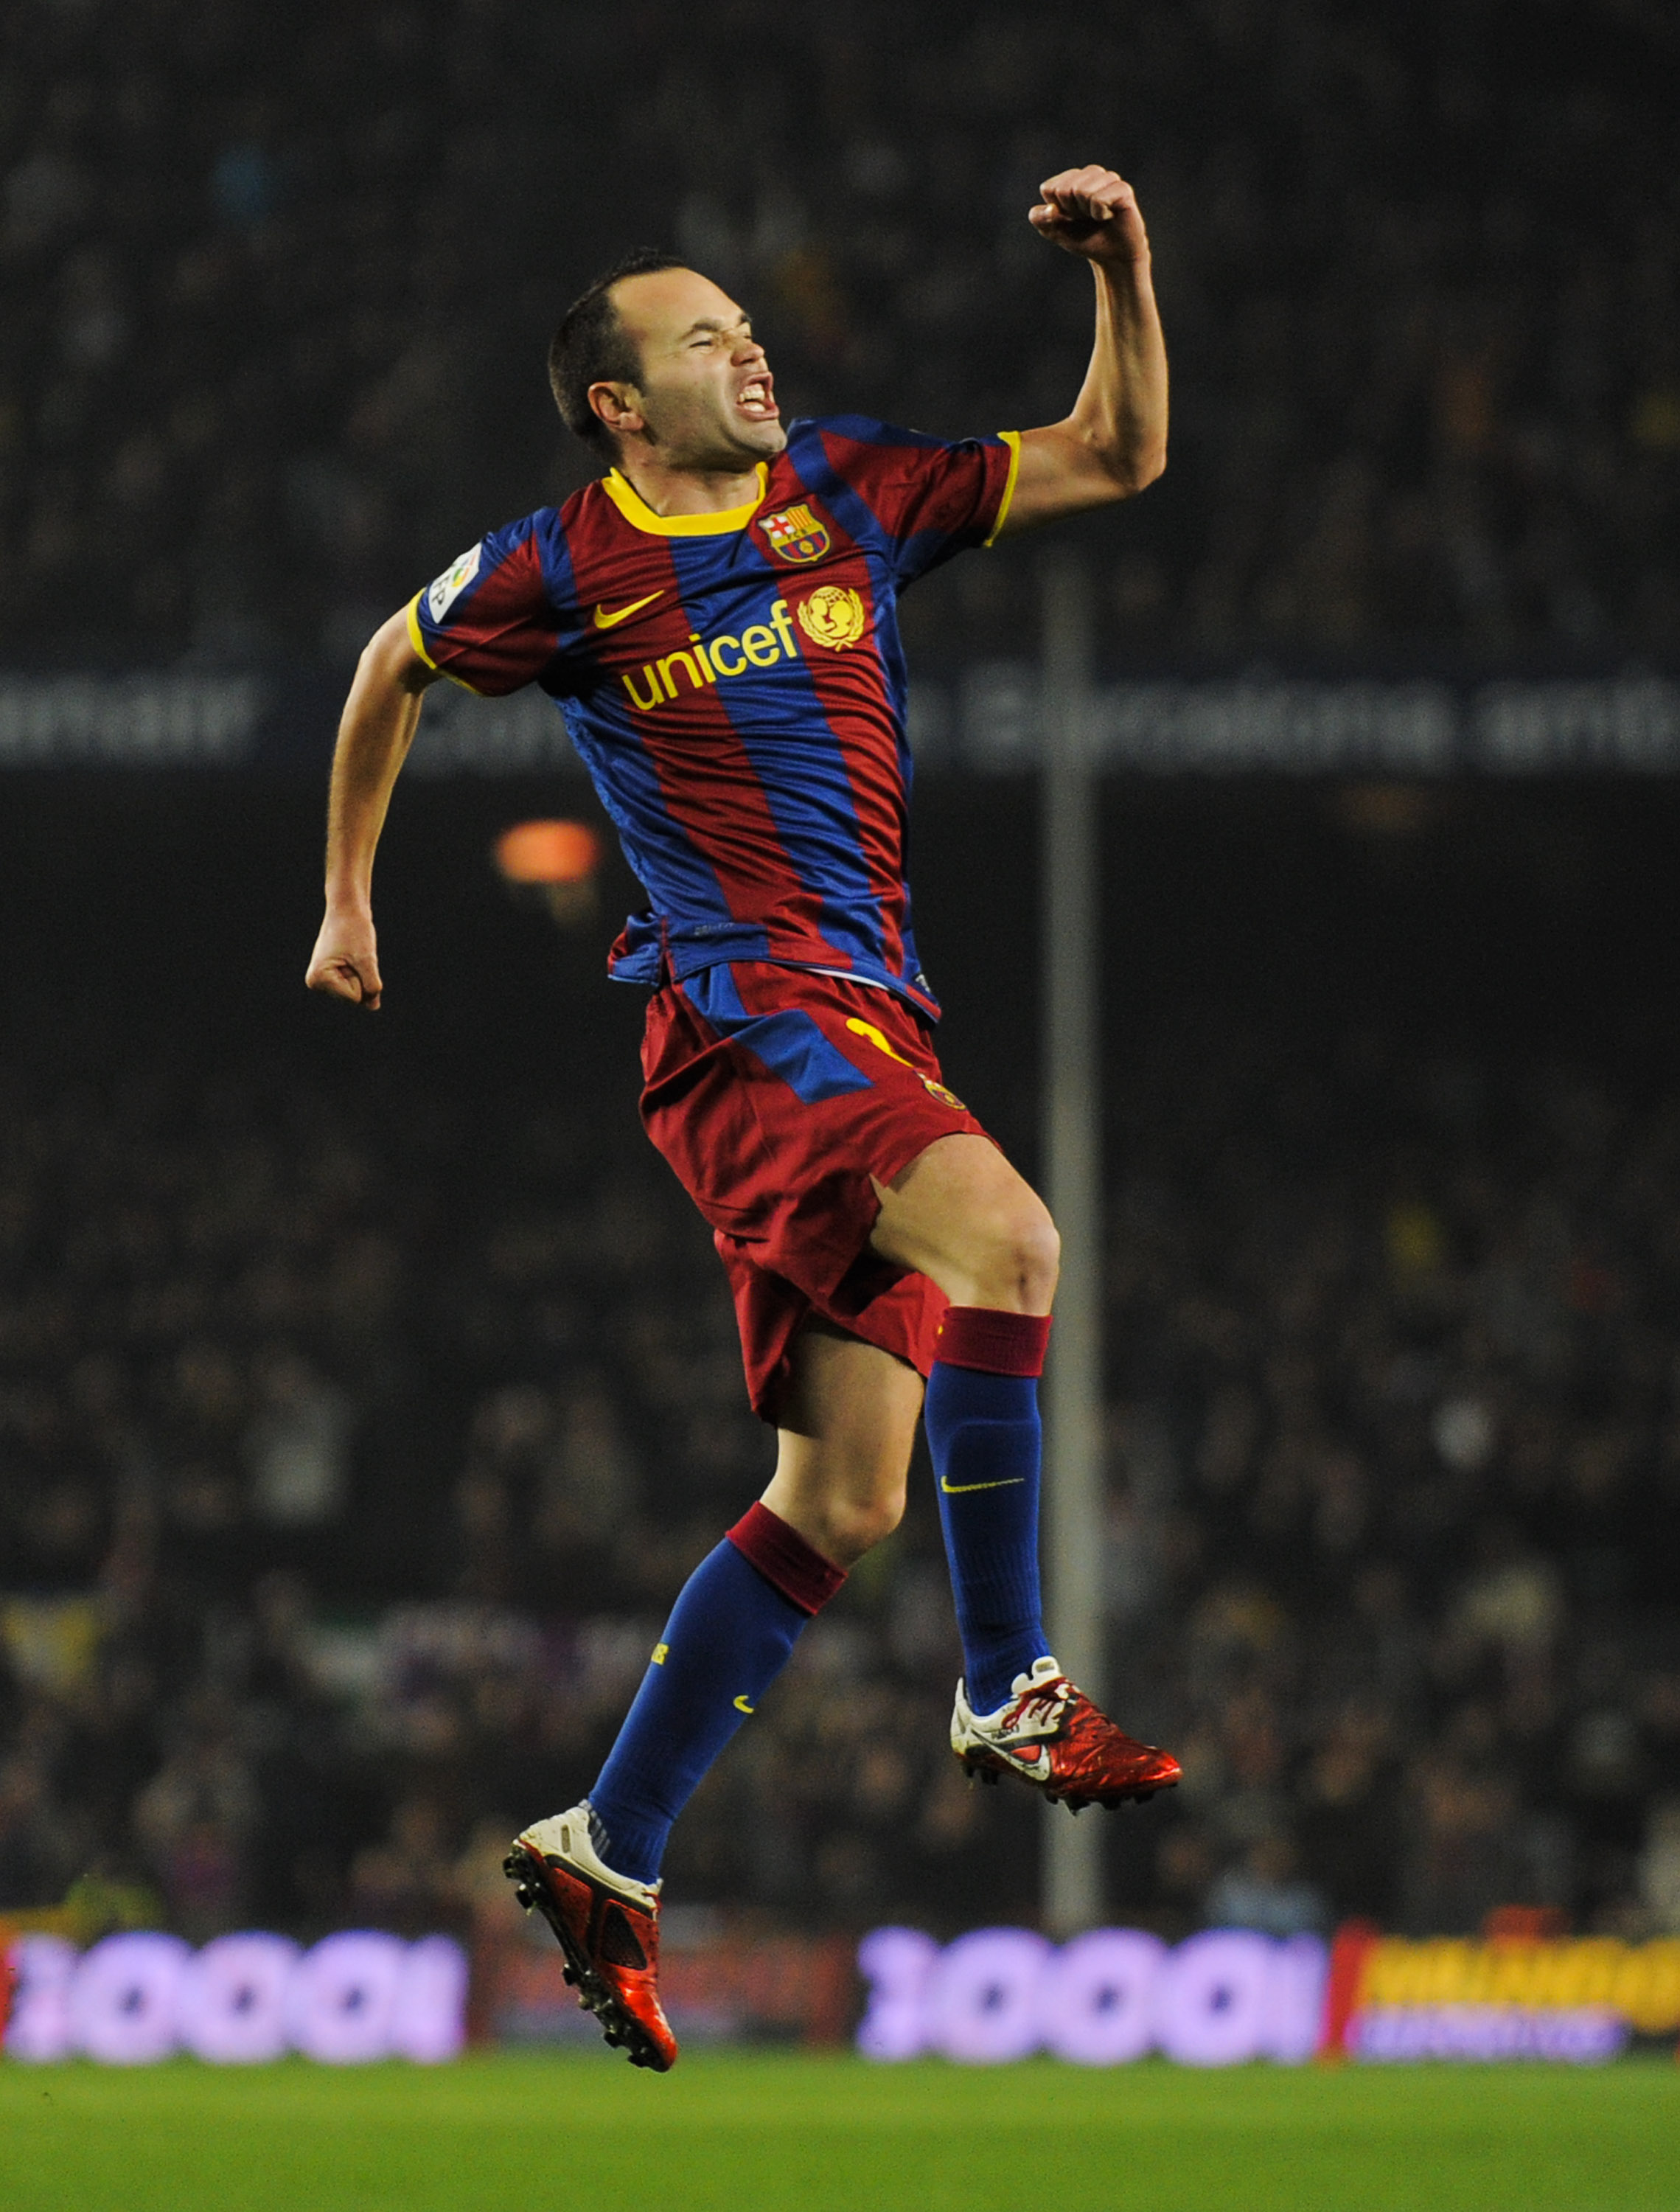 BARCELONA, SPAIN - JANUARY 16:  Andres Iniesta of FC Barcelona celebrates after scoring his side's first goal during the La Liga match between FC Barcelona and Malaga at Nou Camp on January 16, 2011 in Barcelona, Spain.  (Photo by David Ramos/Getty Images